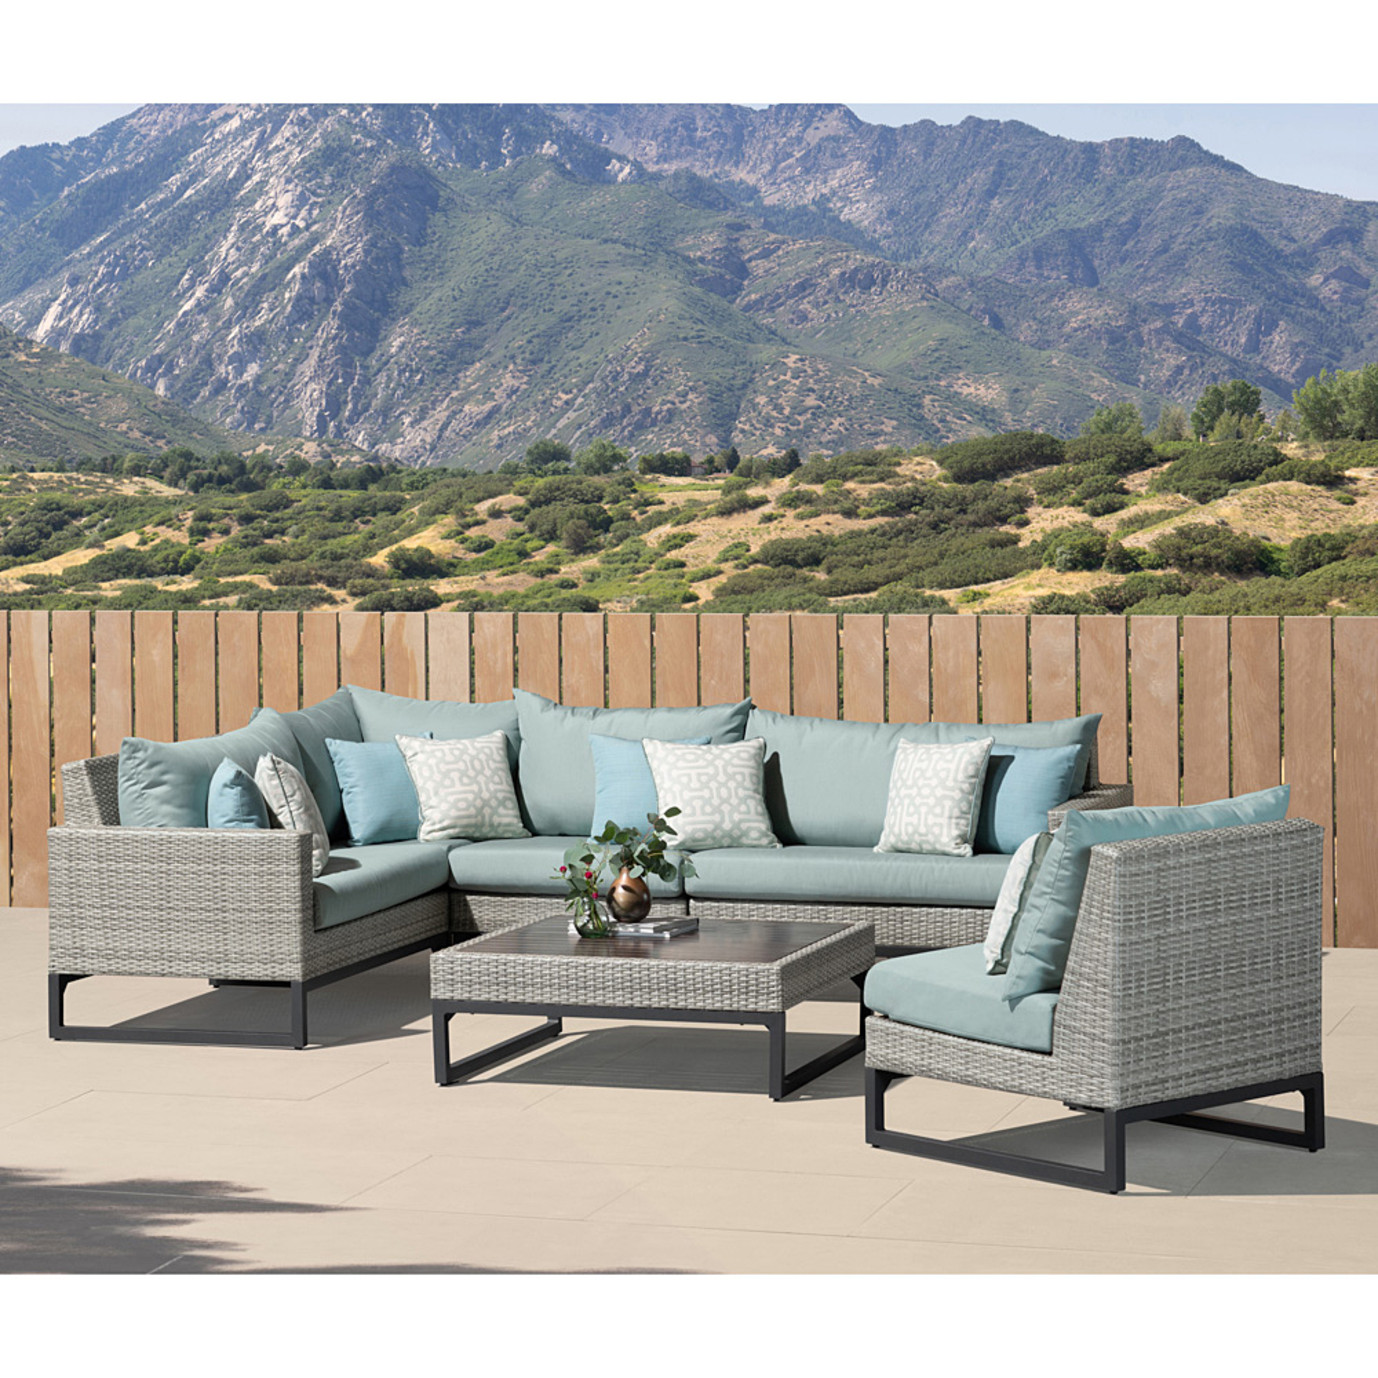 Milo Gray 6 Piece Sectional - Spa Blue